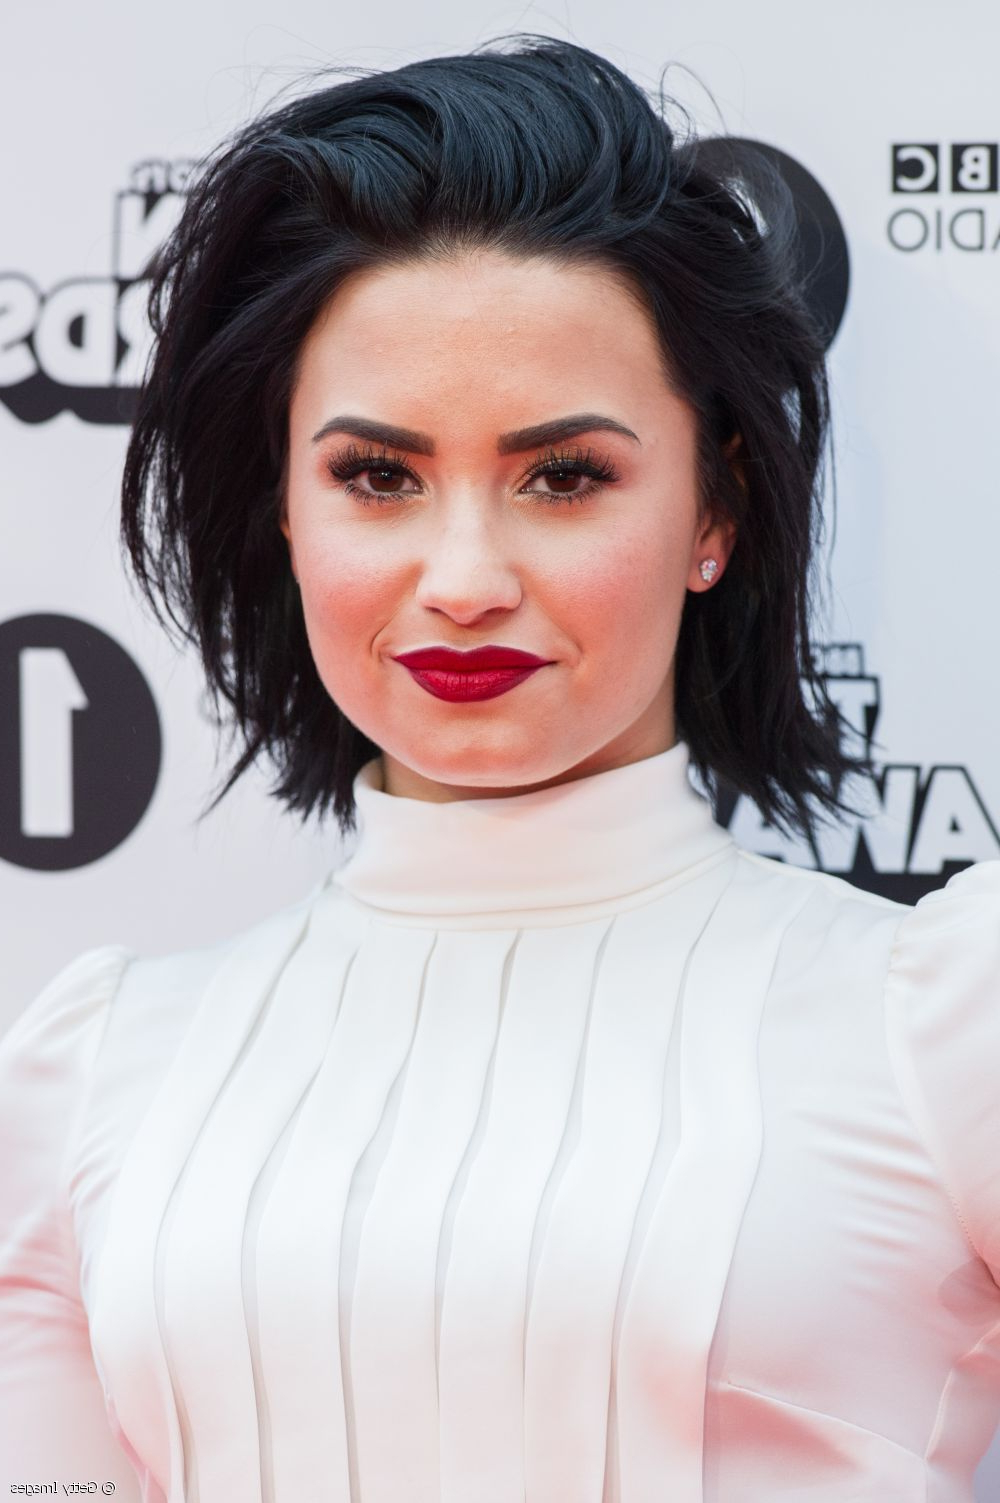 Demi Lovato Goes High Glam: Get Her Red Lipstick + Xxl Lashes Makeup! Intended For Demi Lovato Short Haircuts (View 5 of 25)